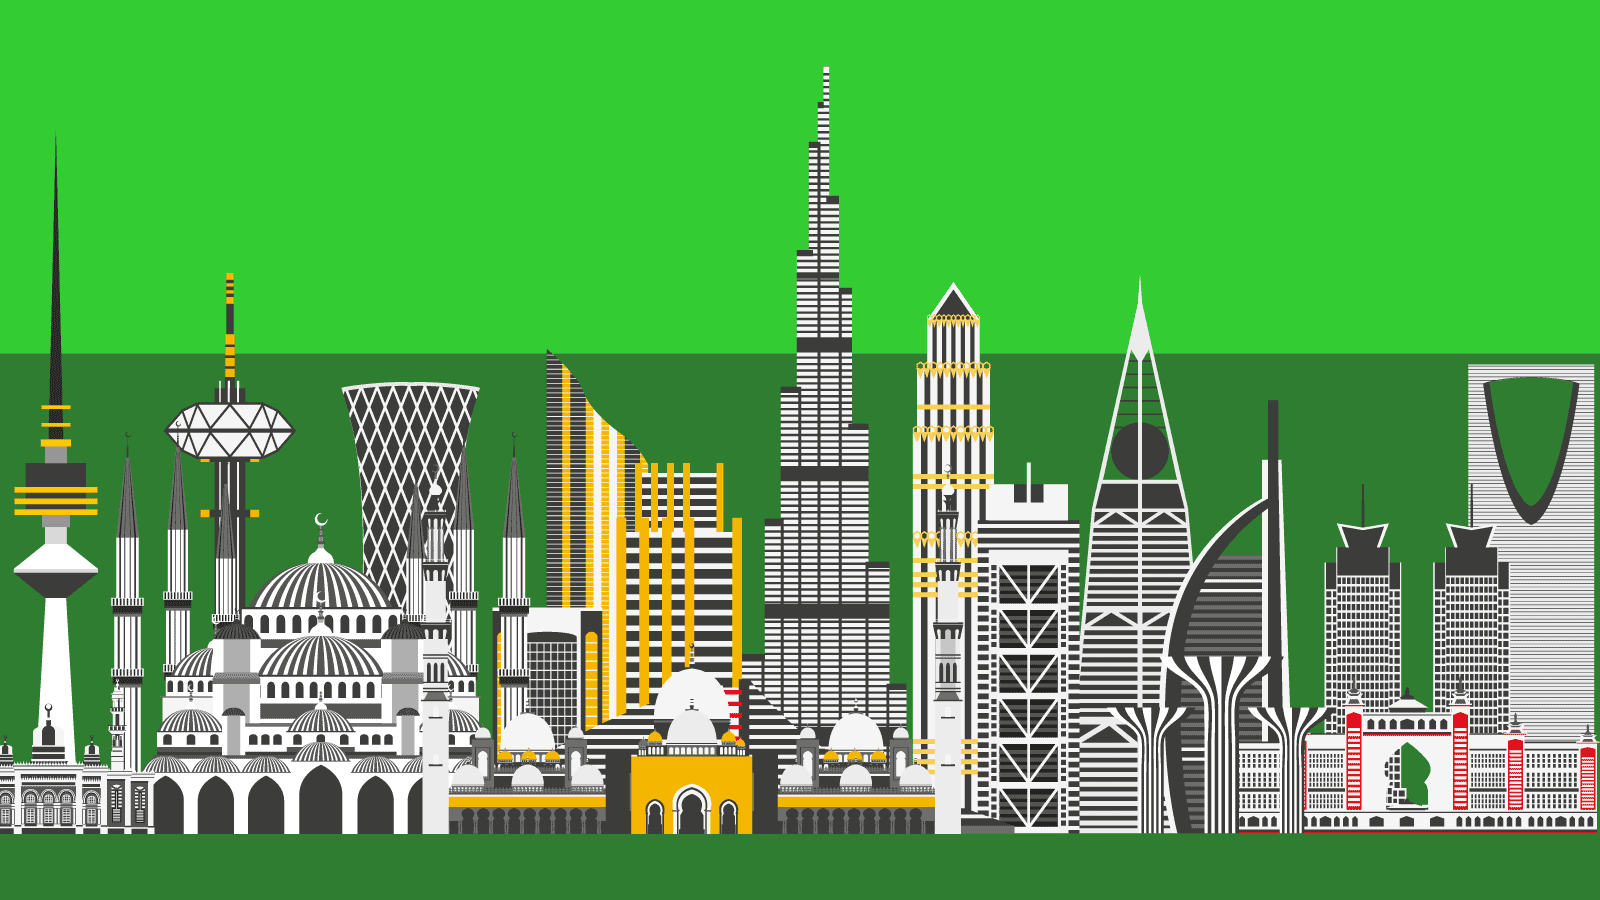 Drawings of the most famous Middle East buildings